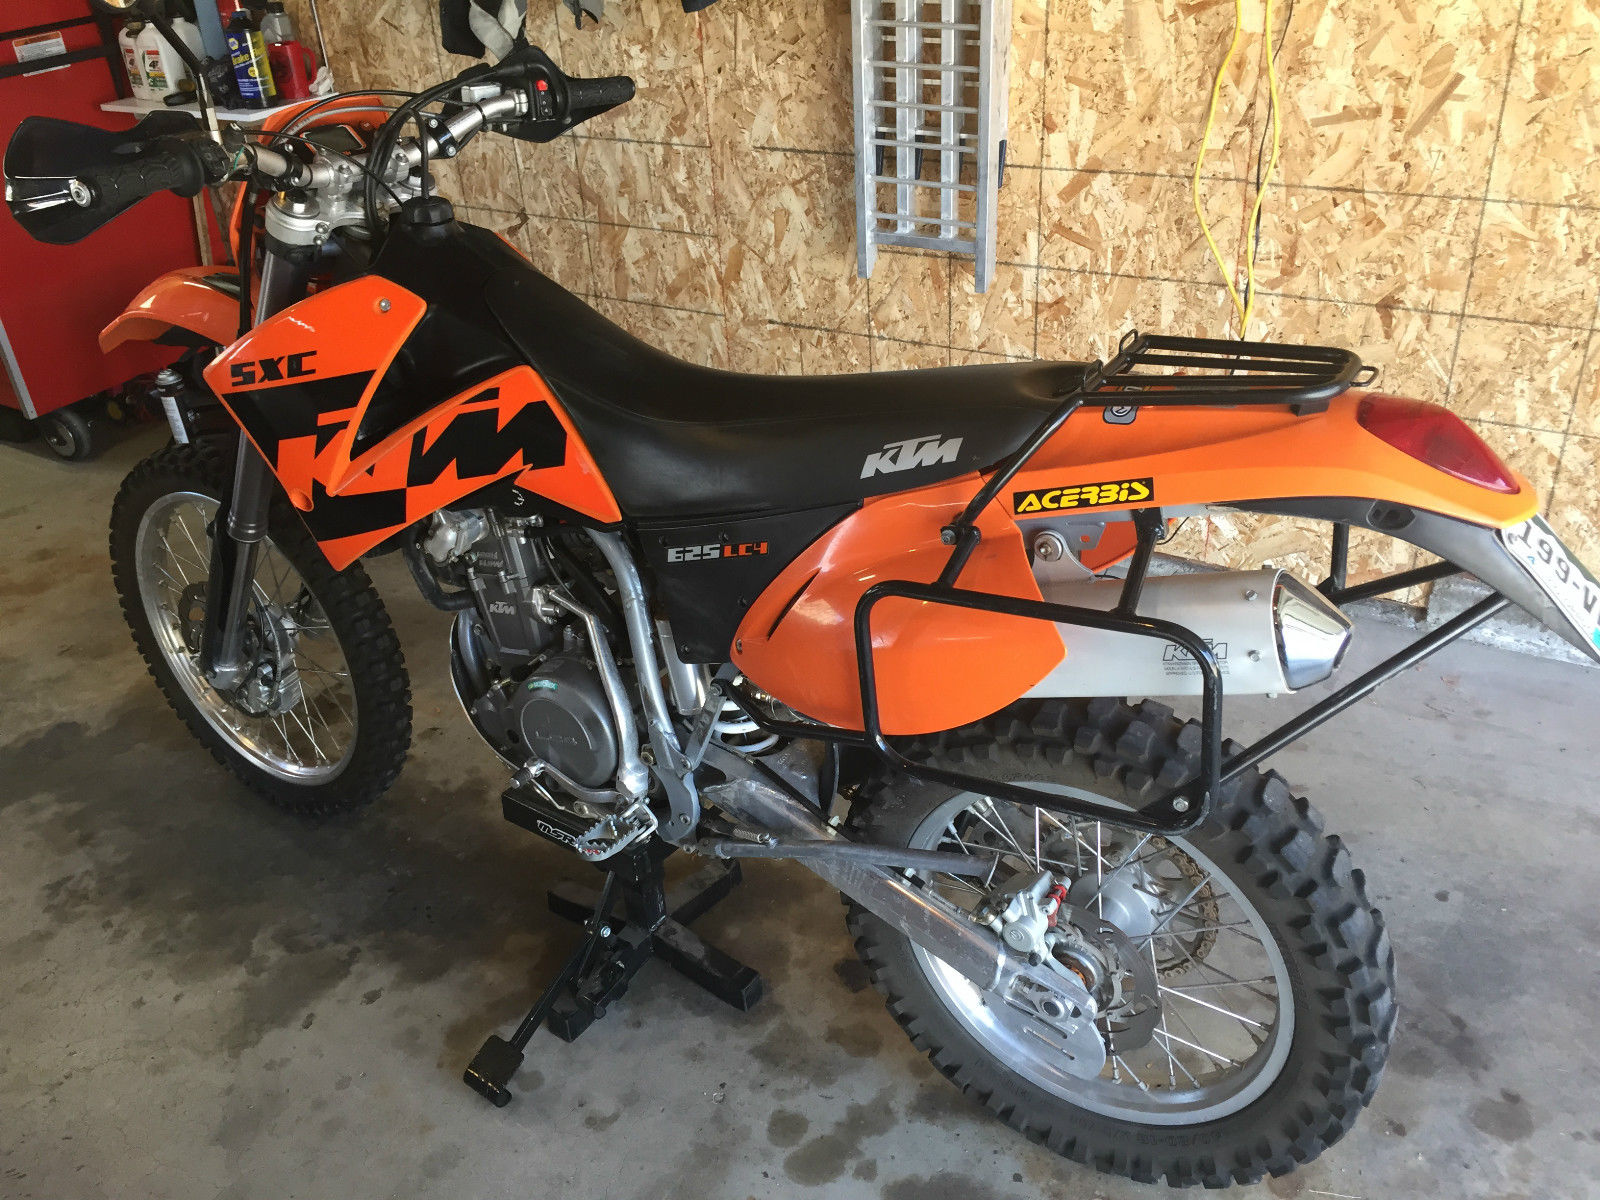 Ktm Dual Sport >> 2004 Ktm 625 Sxc Lc4 Street Legal Dual Sport Great Condition Many Extras